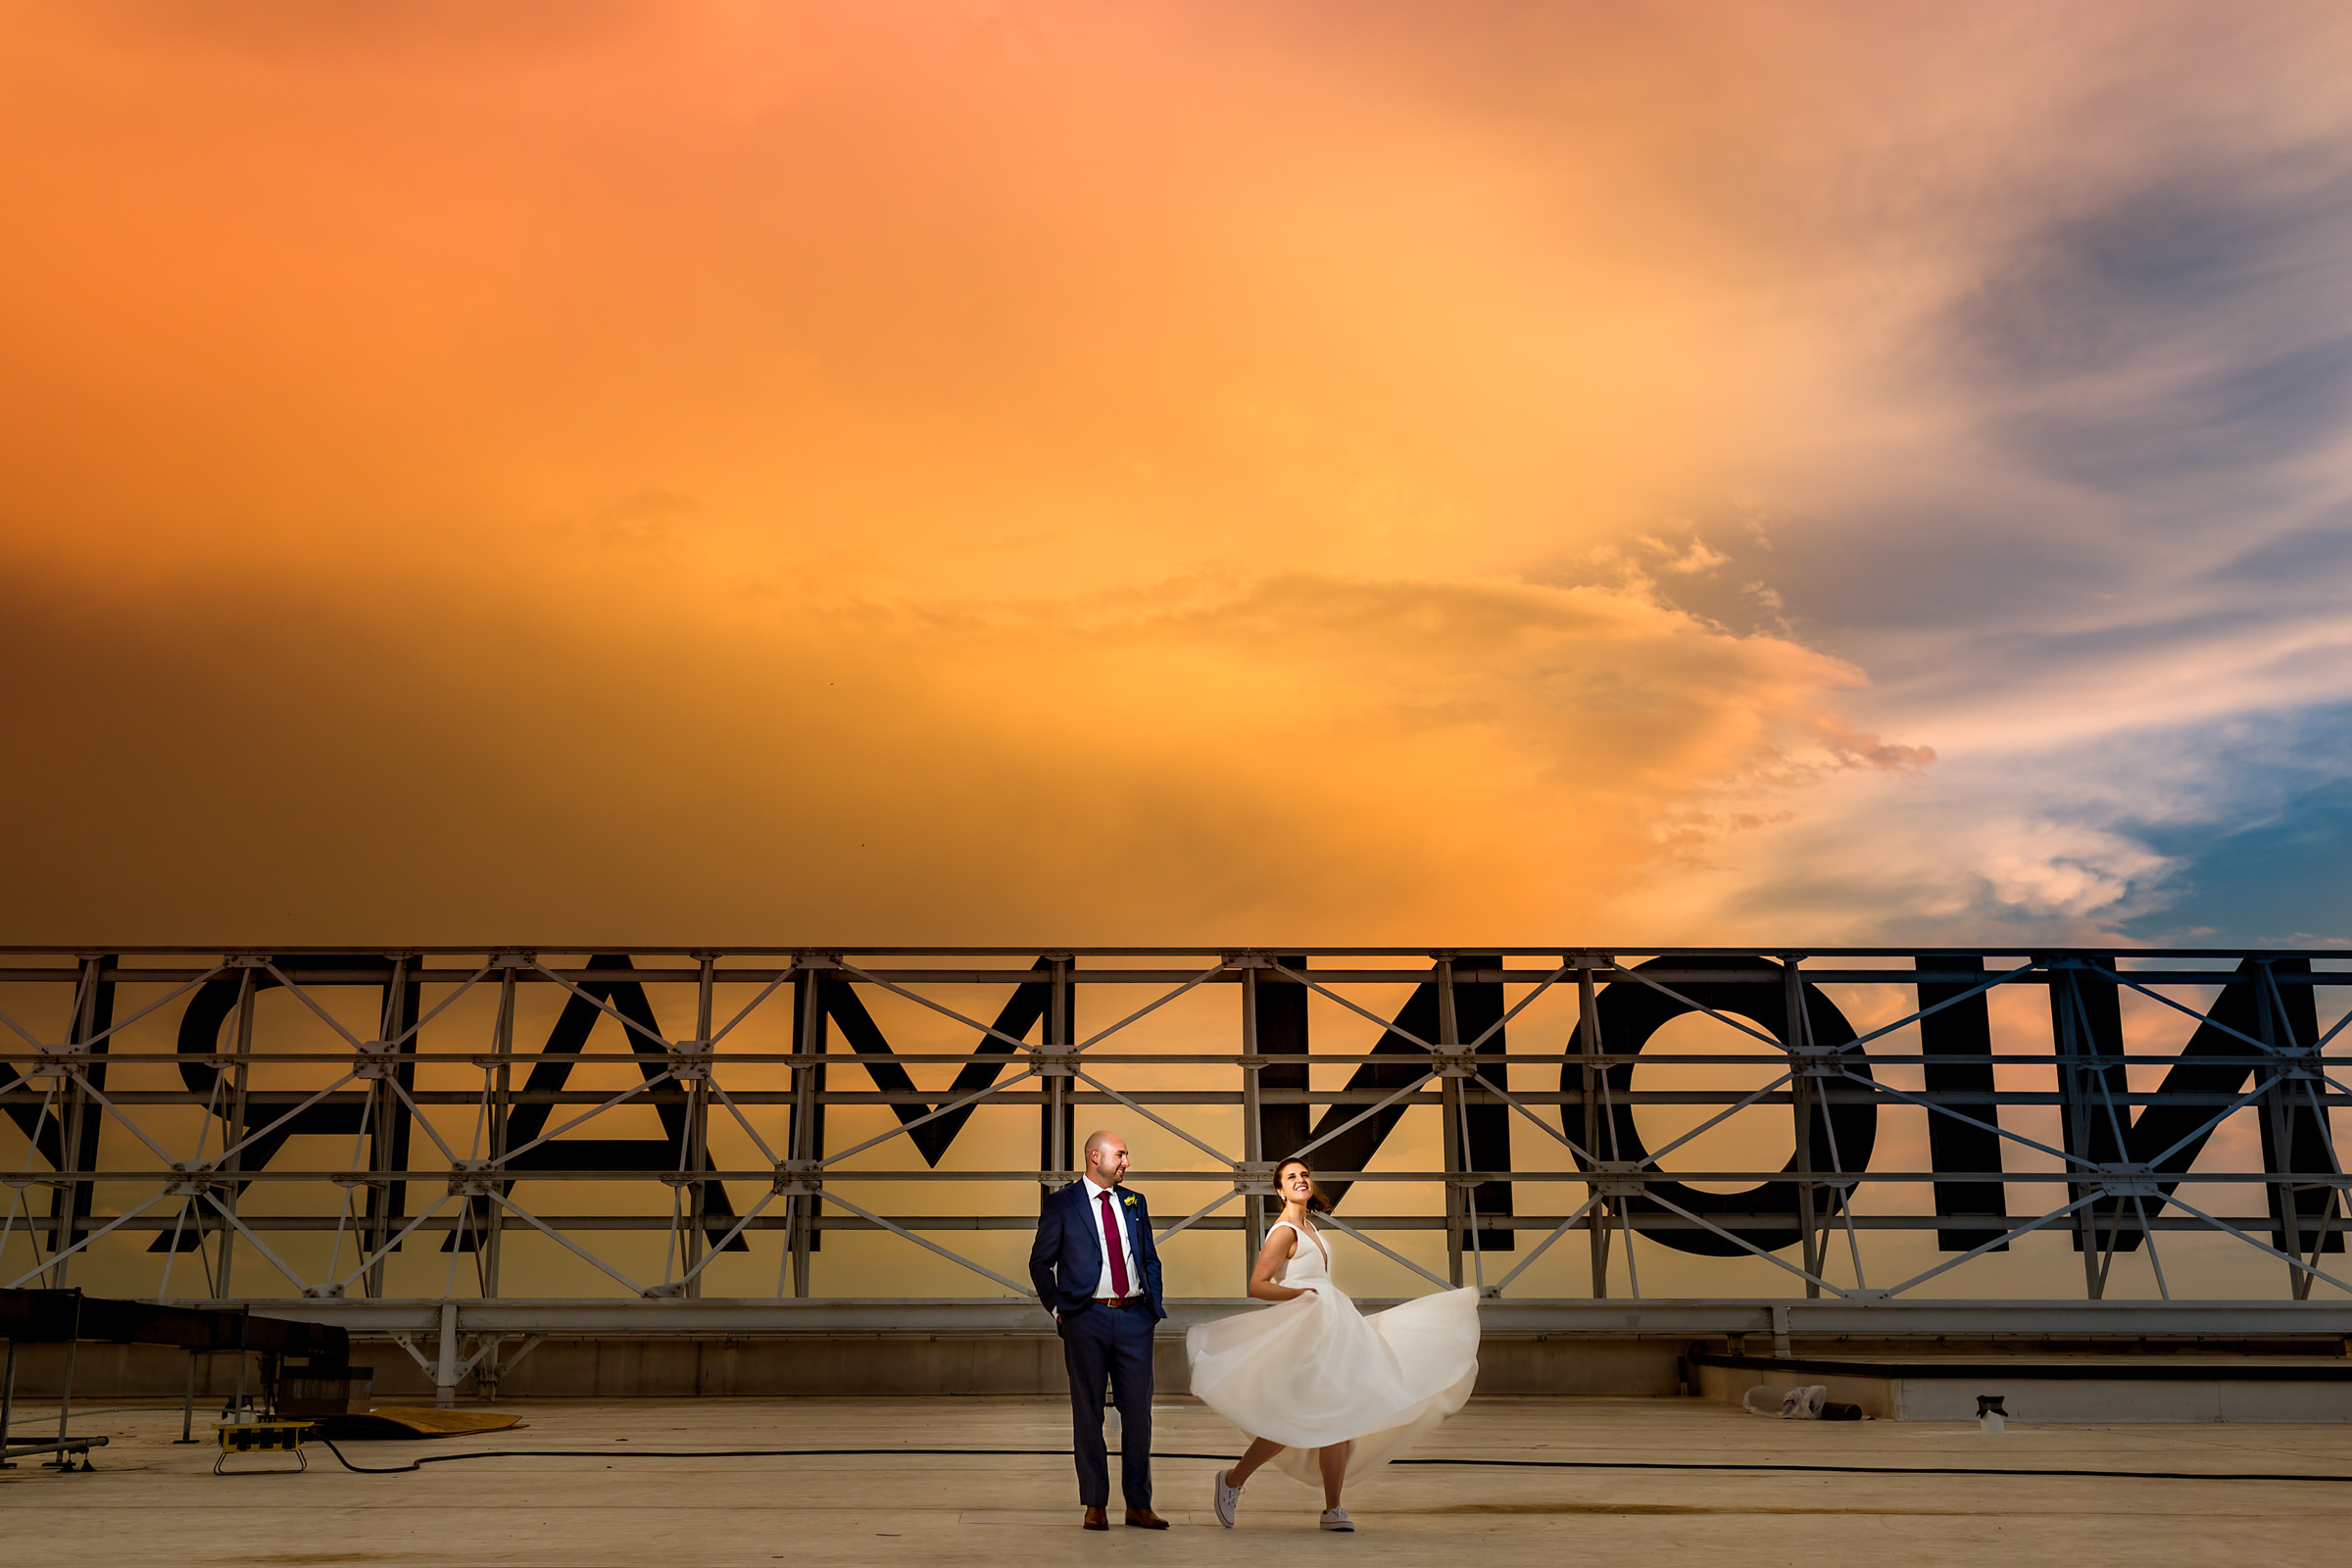 couple-against-epic-sunset-sky-and-large-lettering-procopio-photography